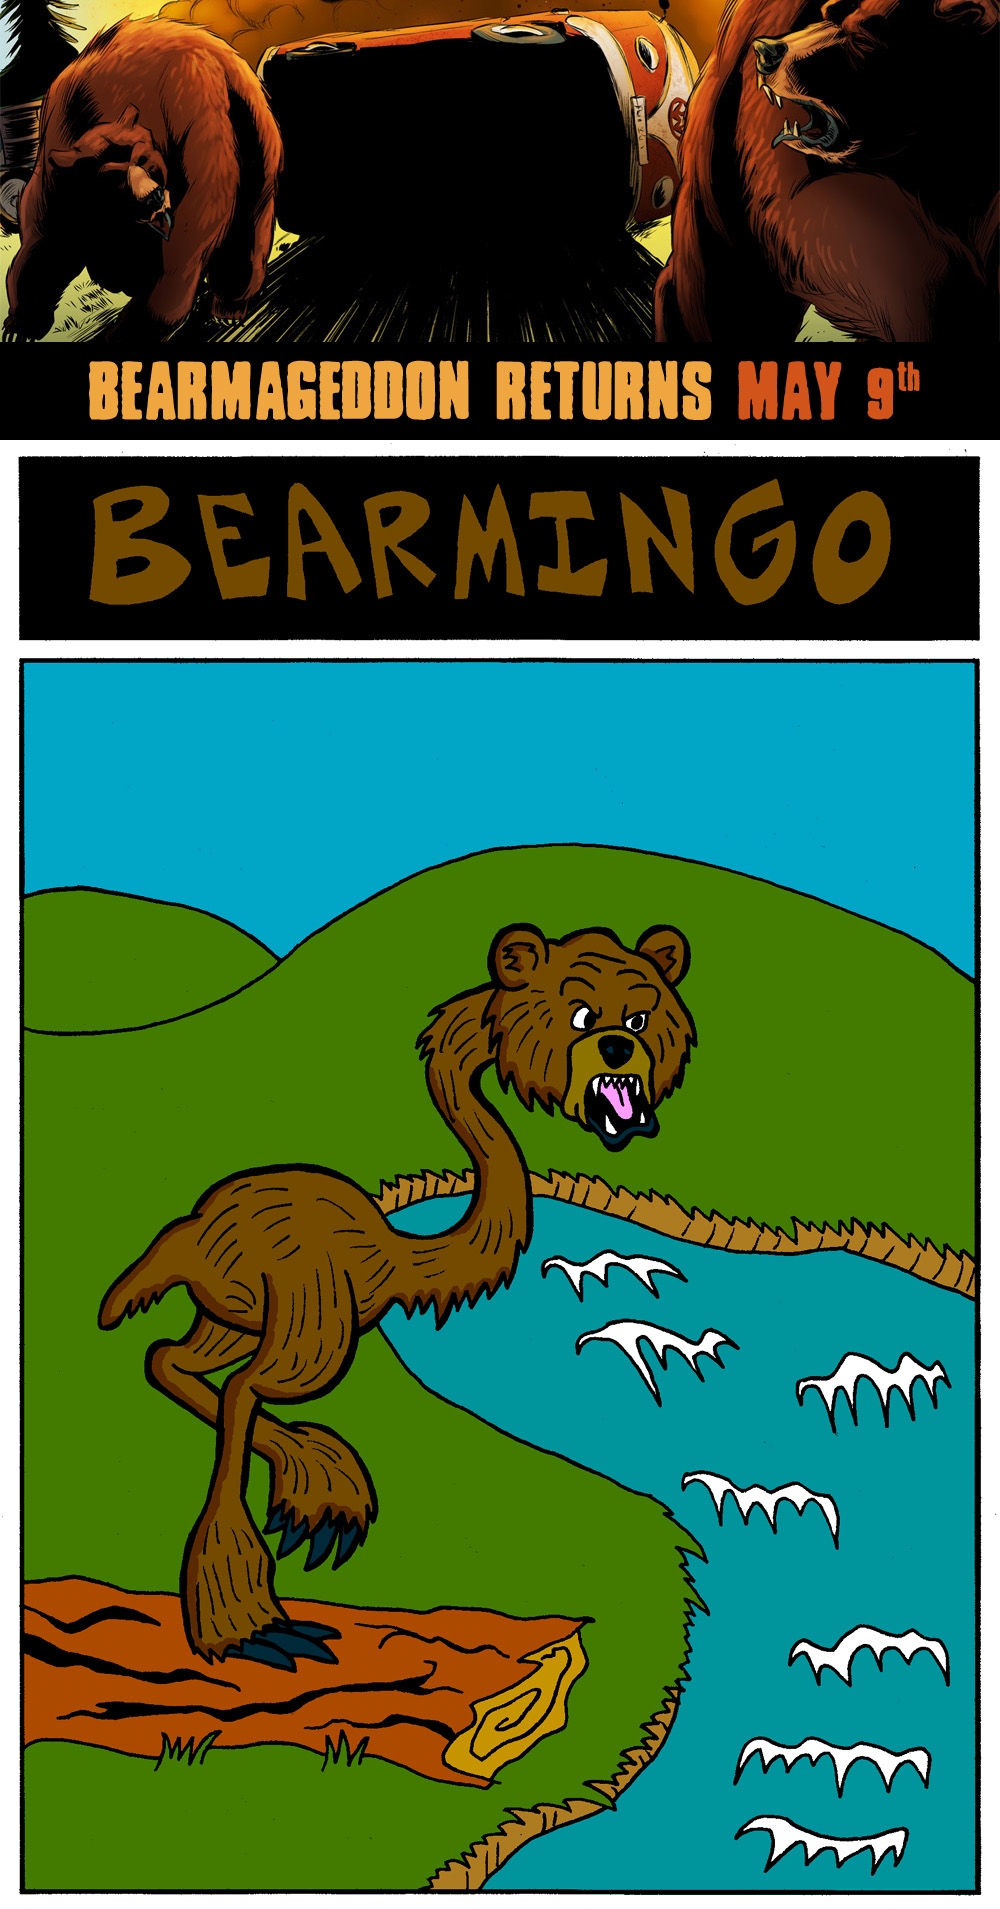 Bearmingo is obviously furious about something out of frame